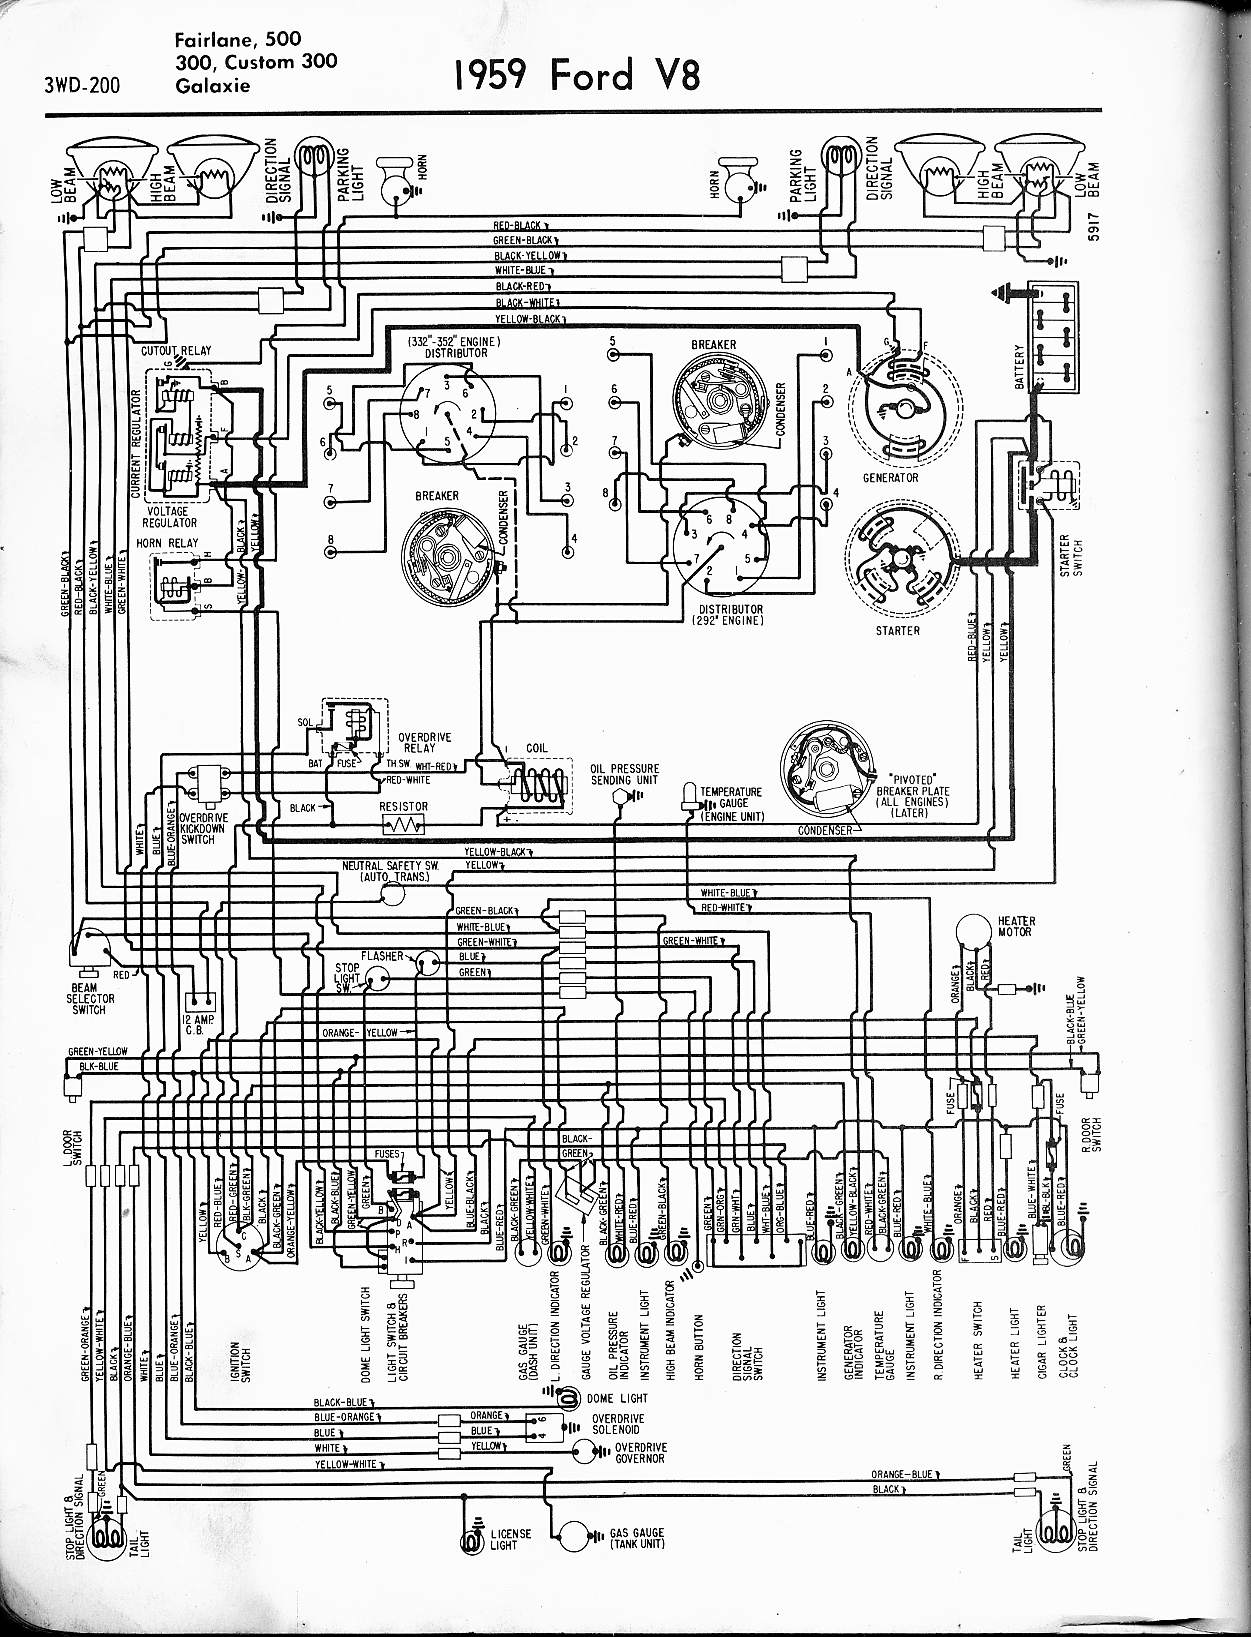 MWire5765 200 57 65 ford wiring diagrams ford wiring schematics at n-0.co